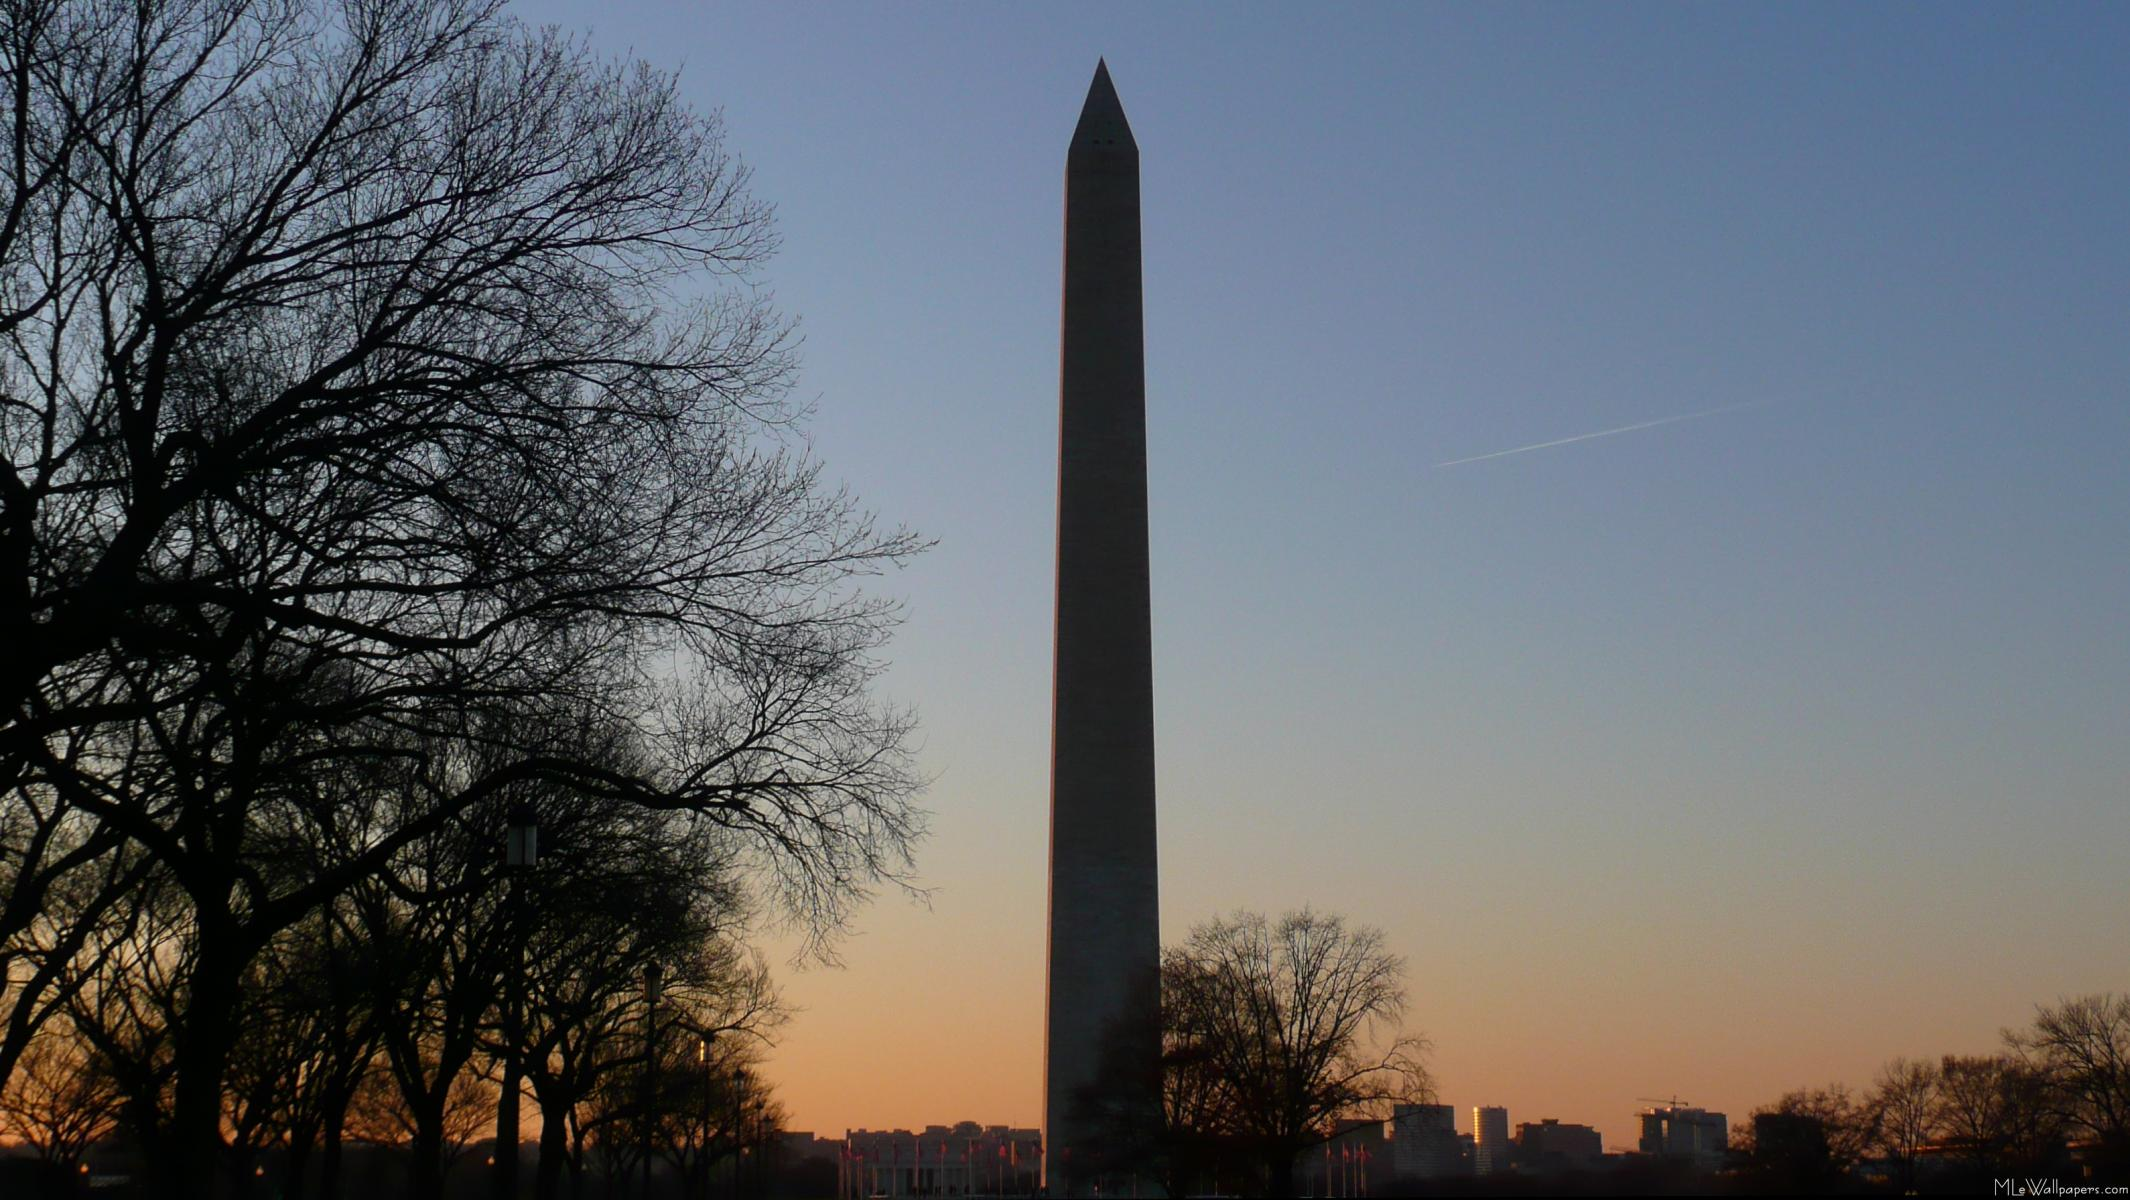 MLeWallpapers.com - Washington Monument at Sunset